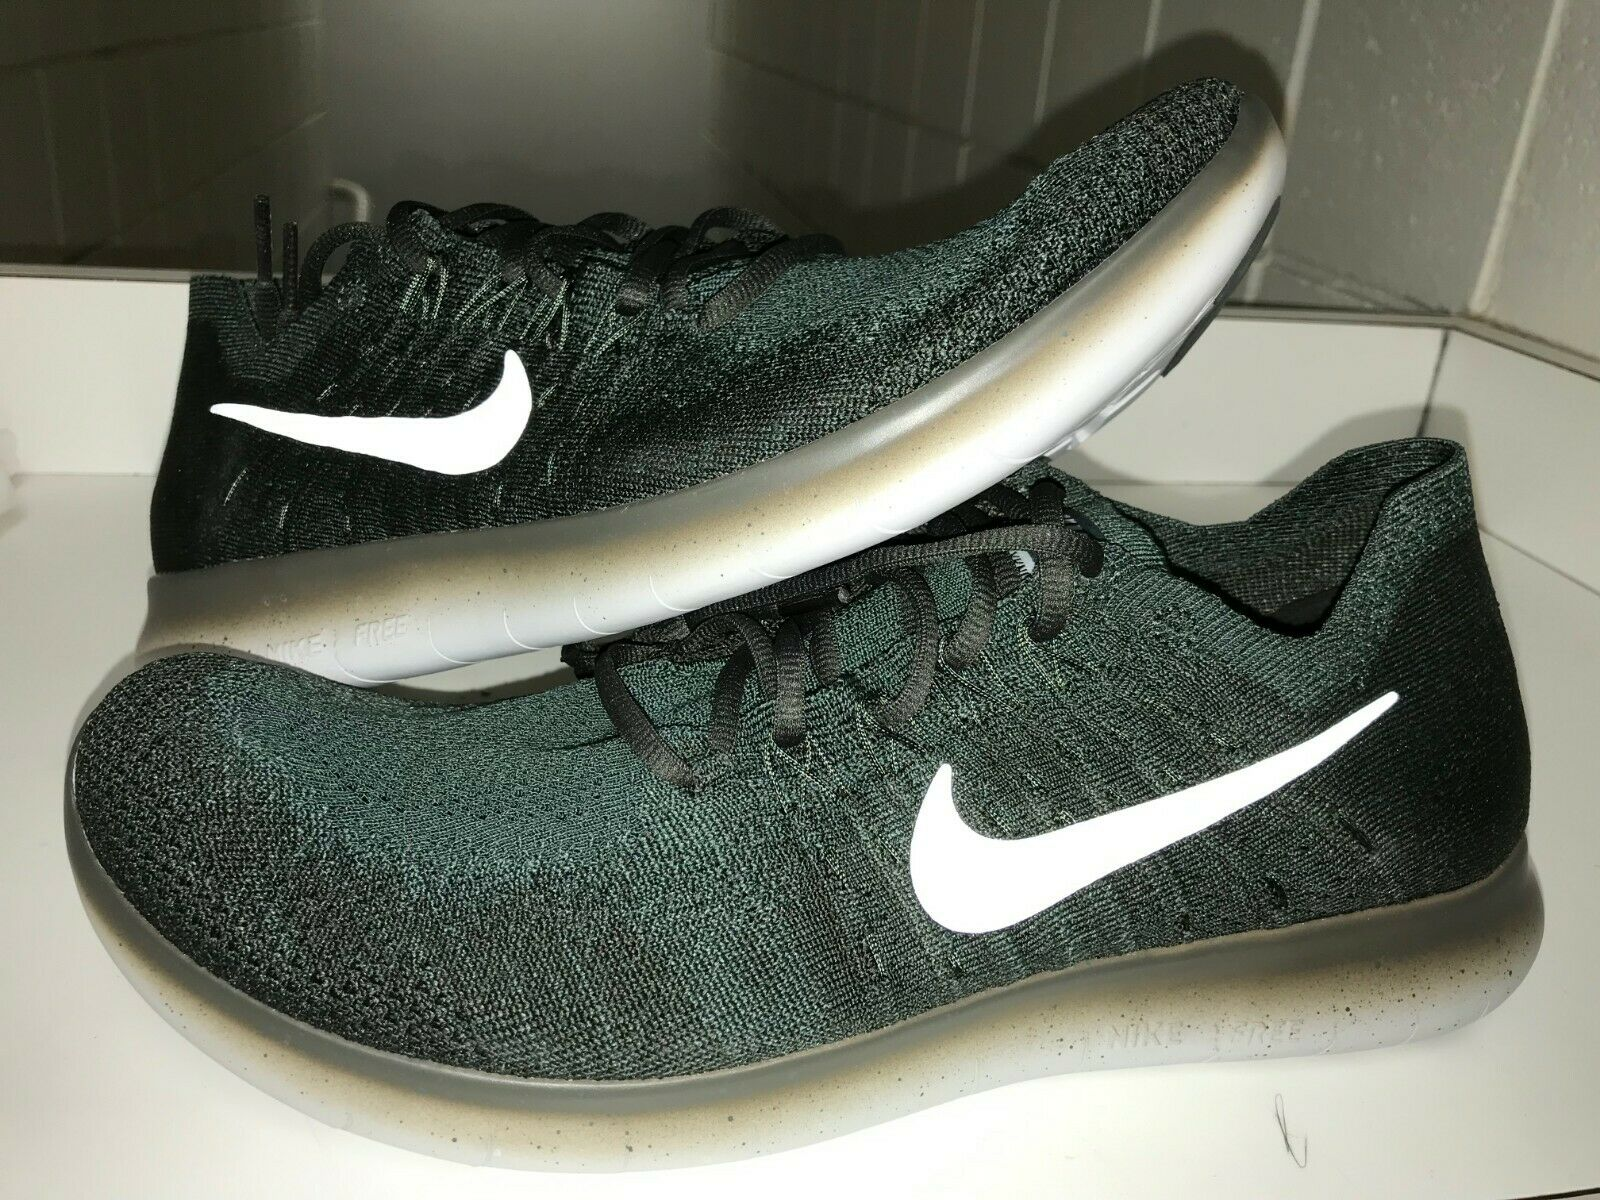 New Nike Men Free RN Flyknit 2017 Running shoes Vintage Green Sequoia 880843-300